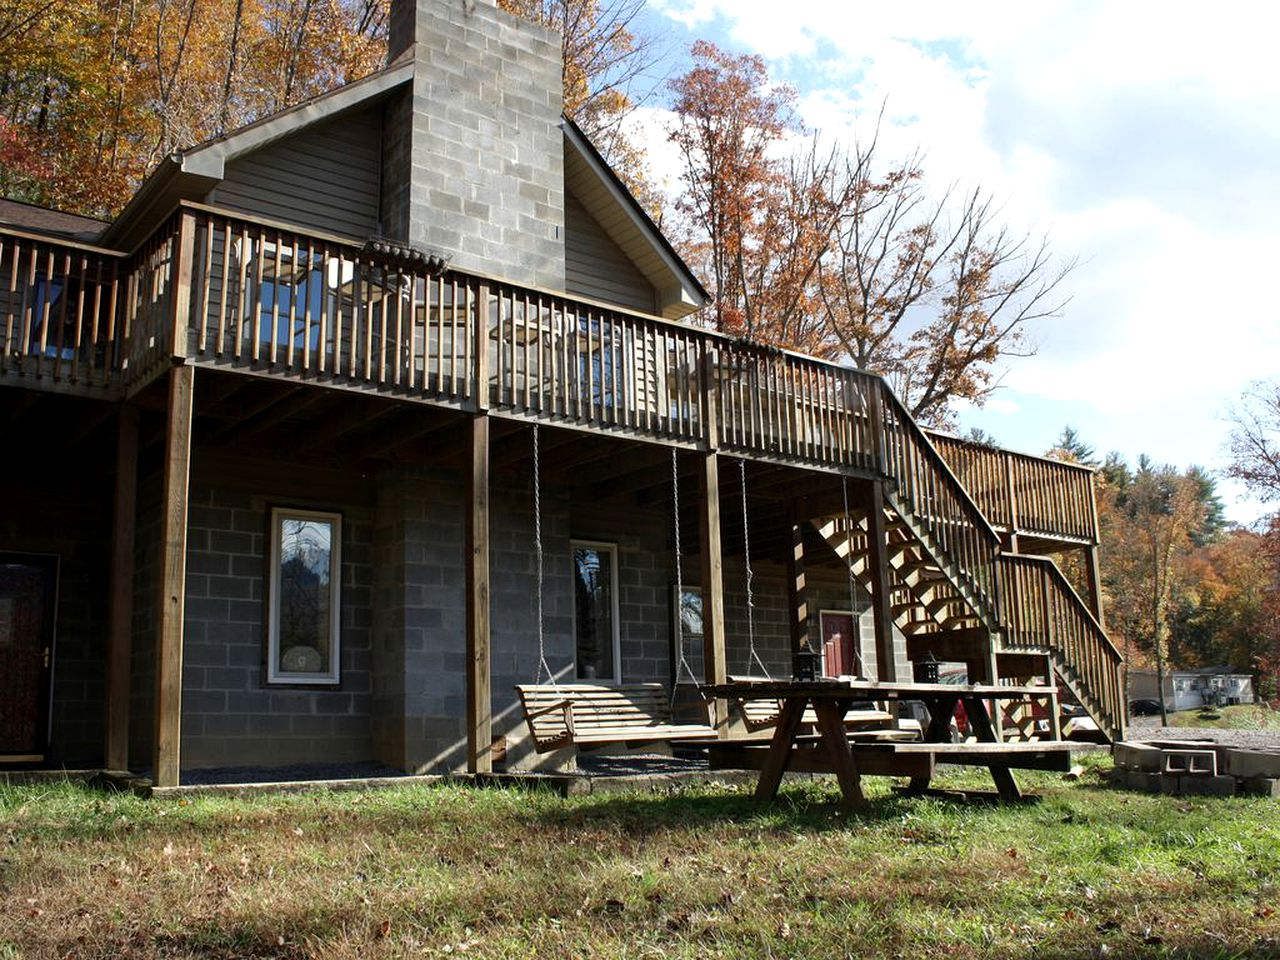 Vacation Rentals (Oliver Springs, Tennessee, United States)